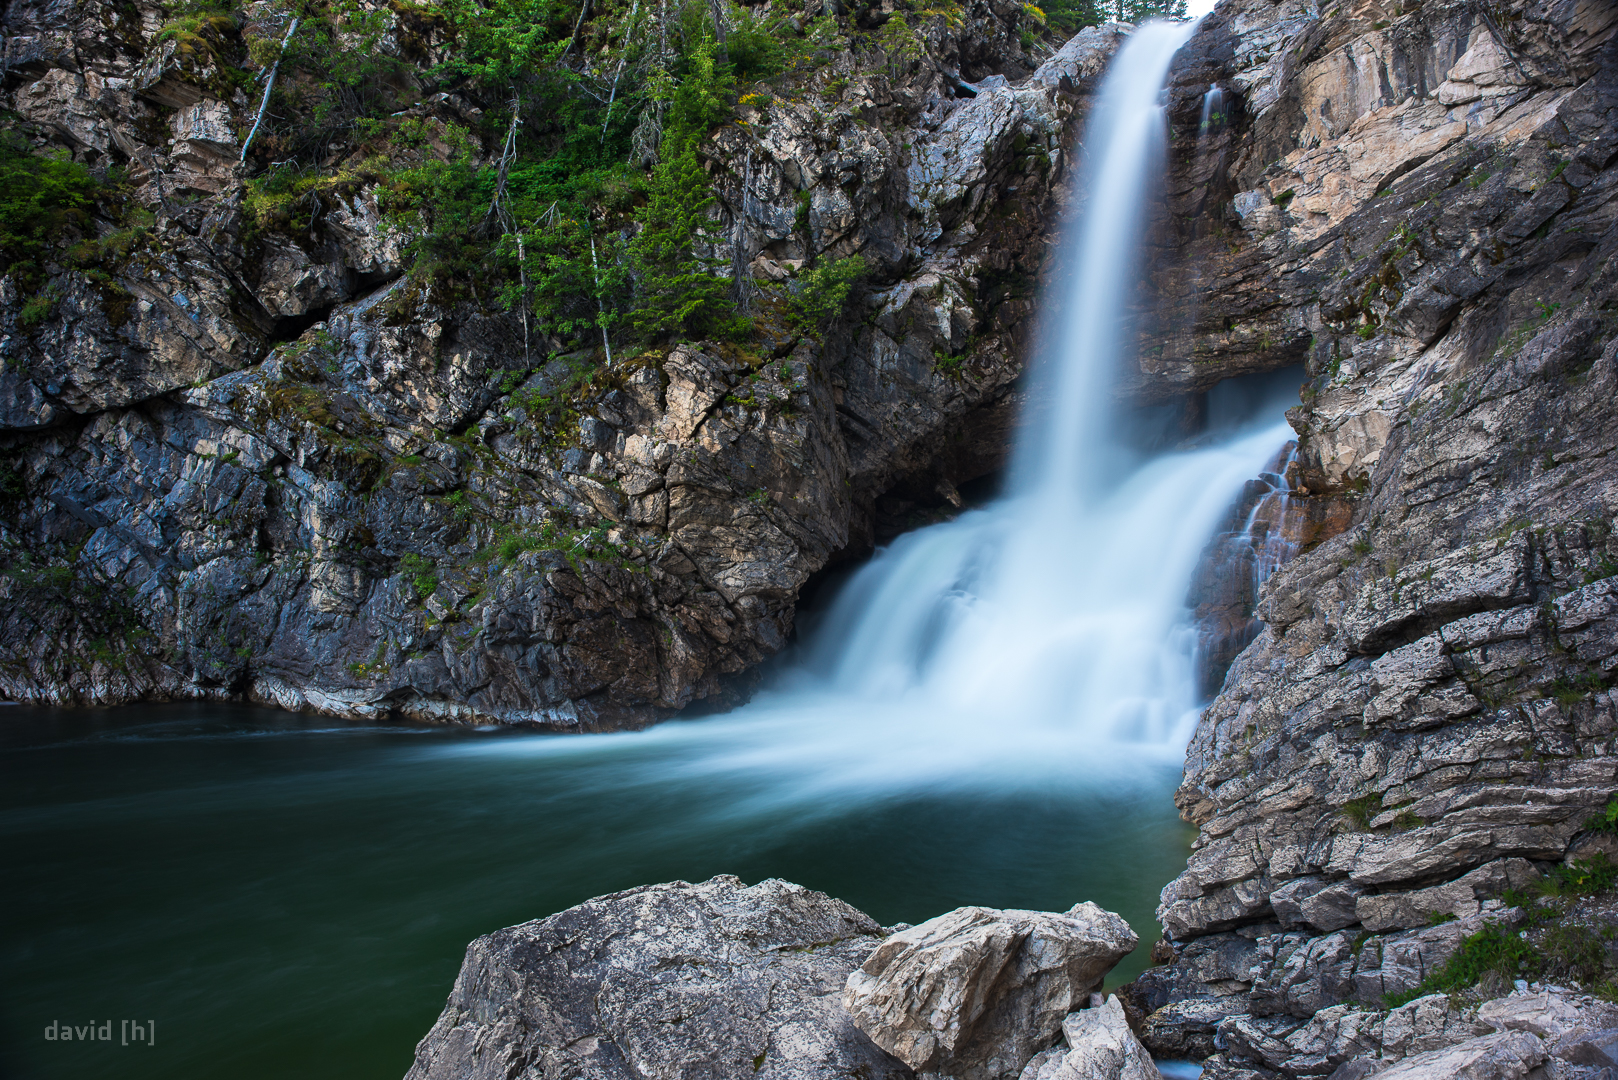 The Running Eagle Falls near Two Medicine Lake have a trick up their sleeve: They are actually two falls, one hidden behind the other. They are only visible individually only if there's a low flow of water coming from the top - otherwise the top waterfall would obscure the lower one.